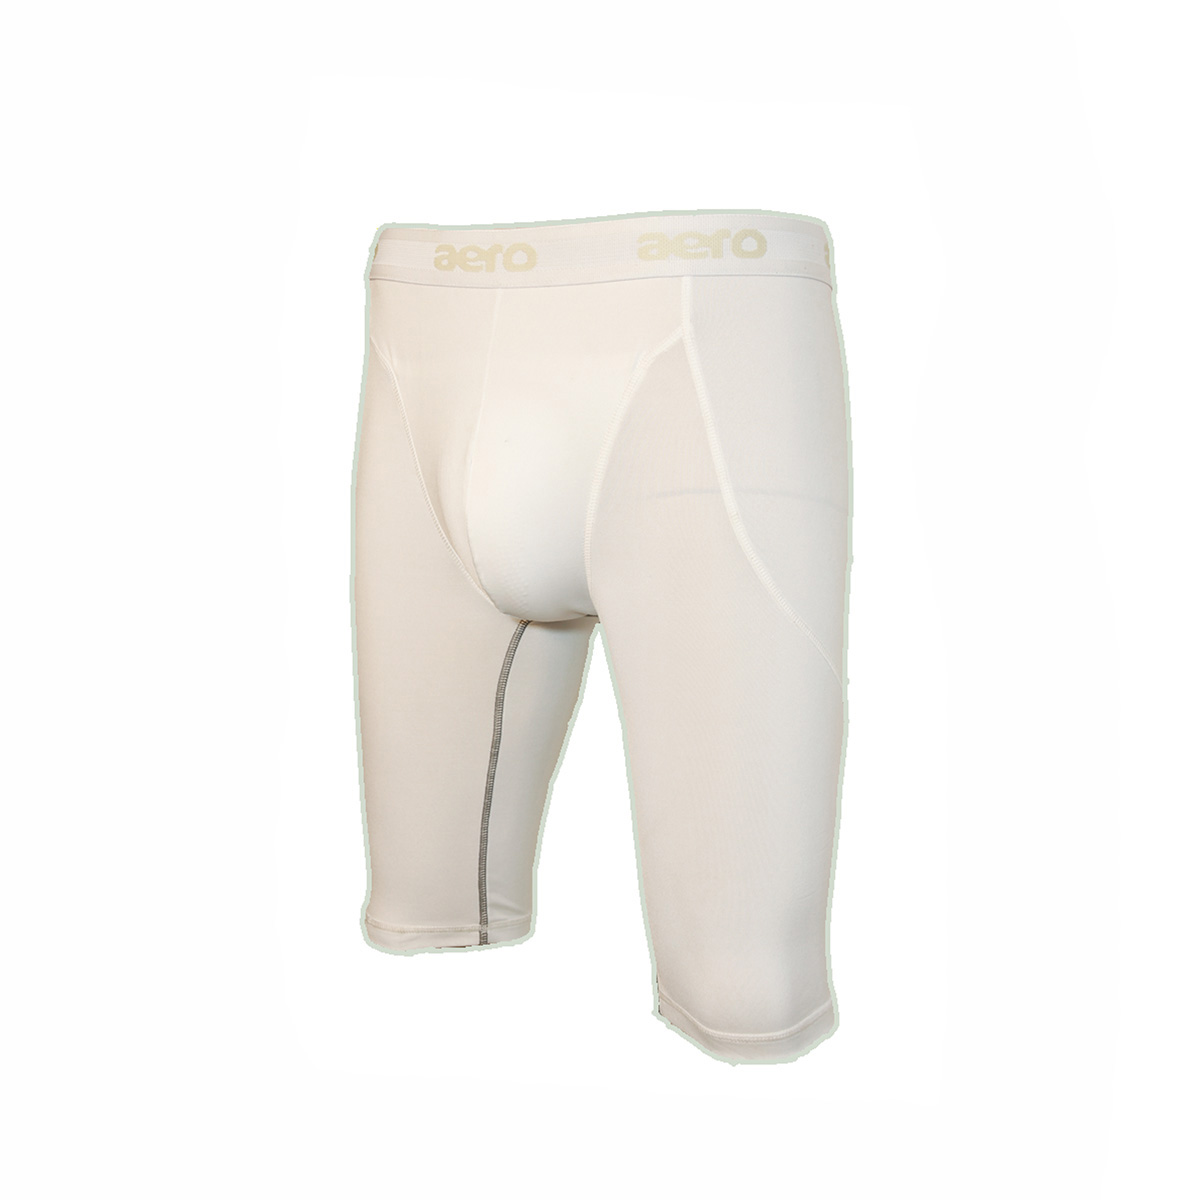 Aero Compression Shorts15